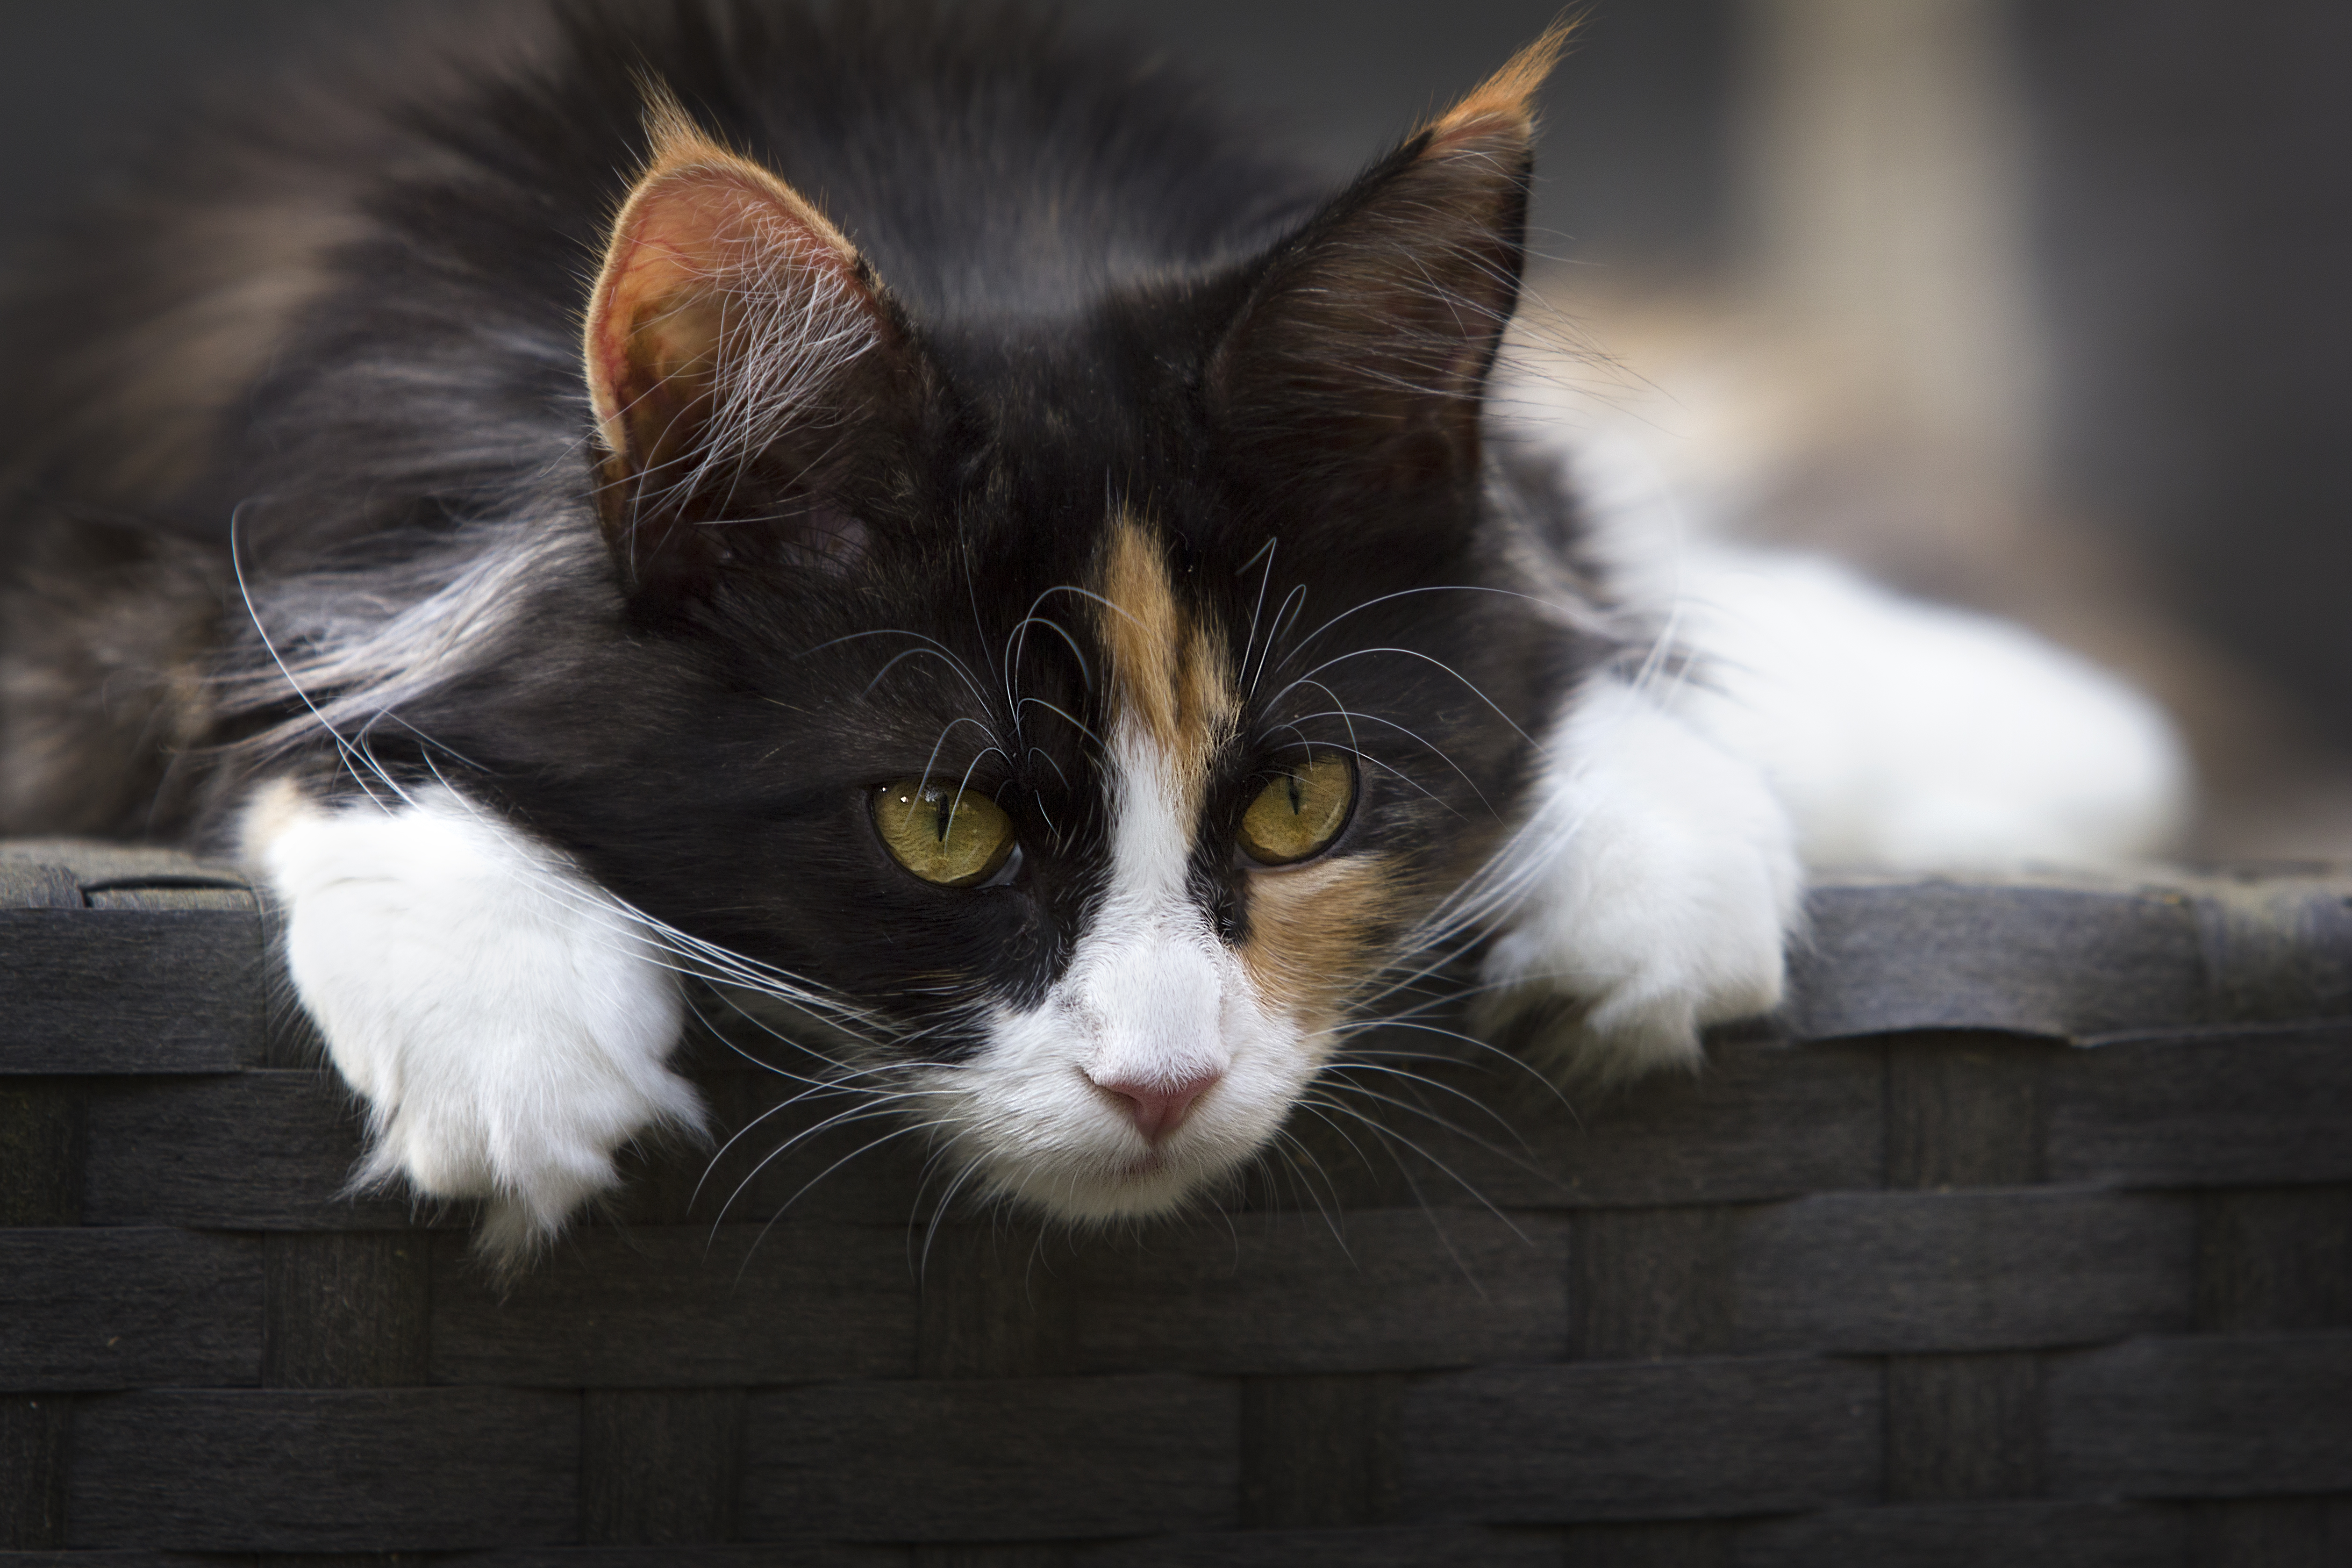 Cute And Adorable Wallpapers Calico Cat On Gray Concrete Stair 183 Free Stock Photo